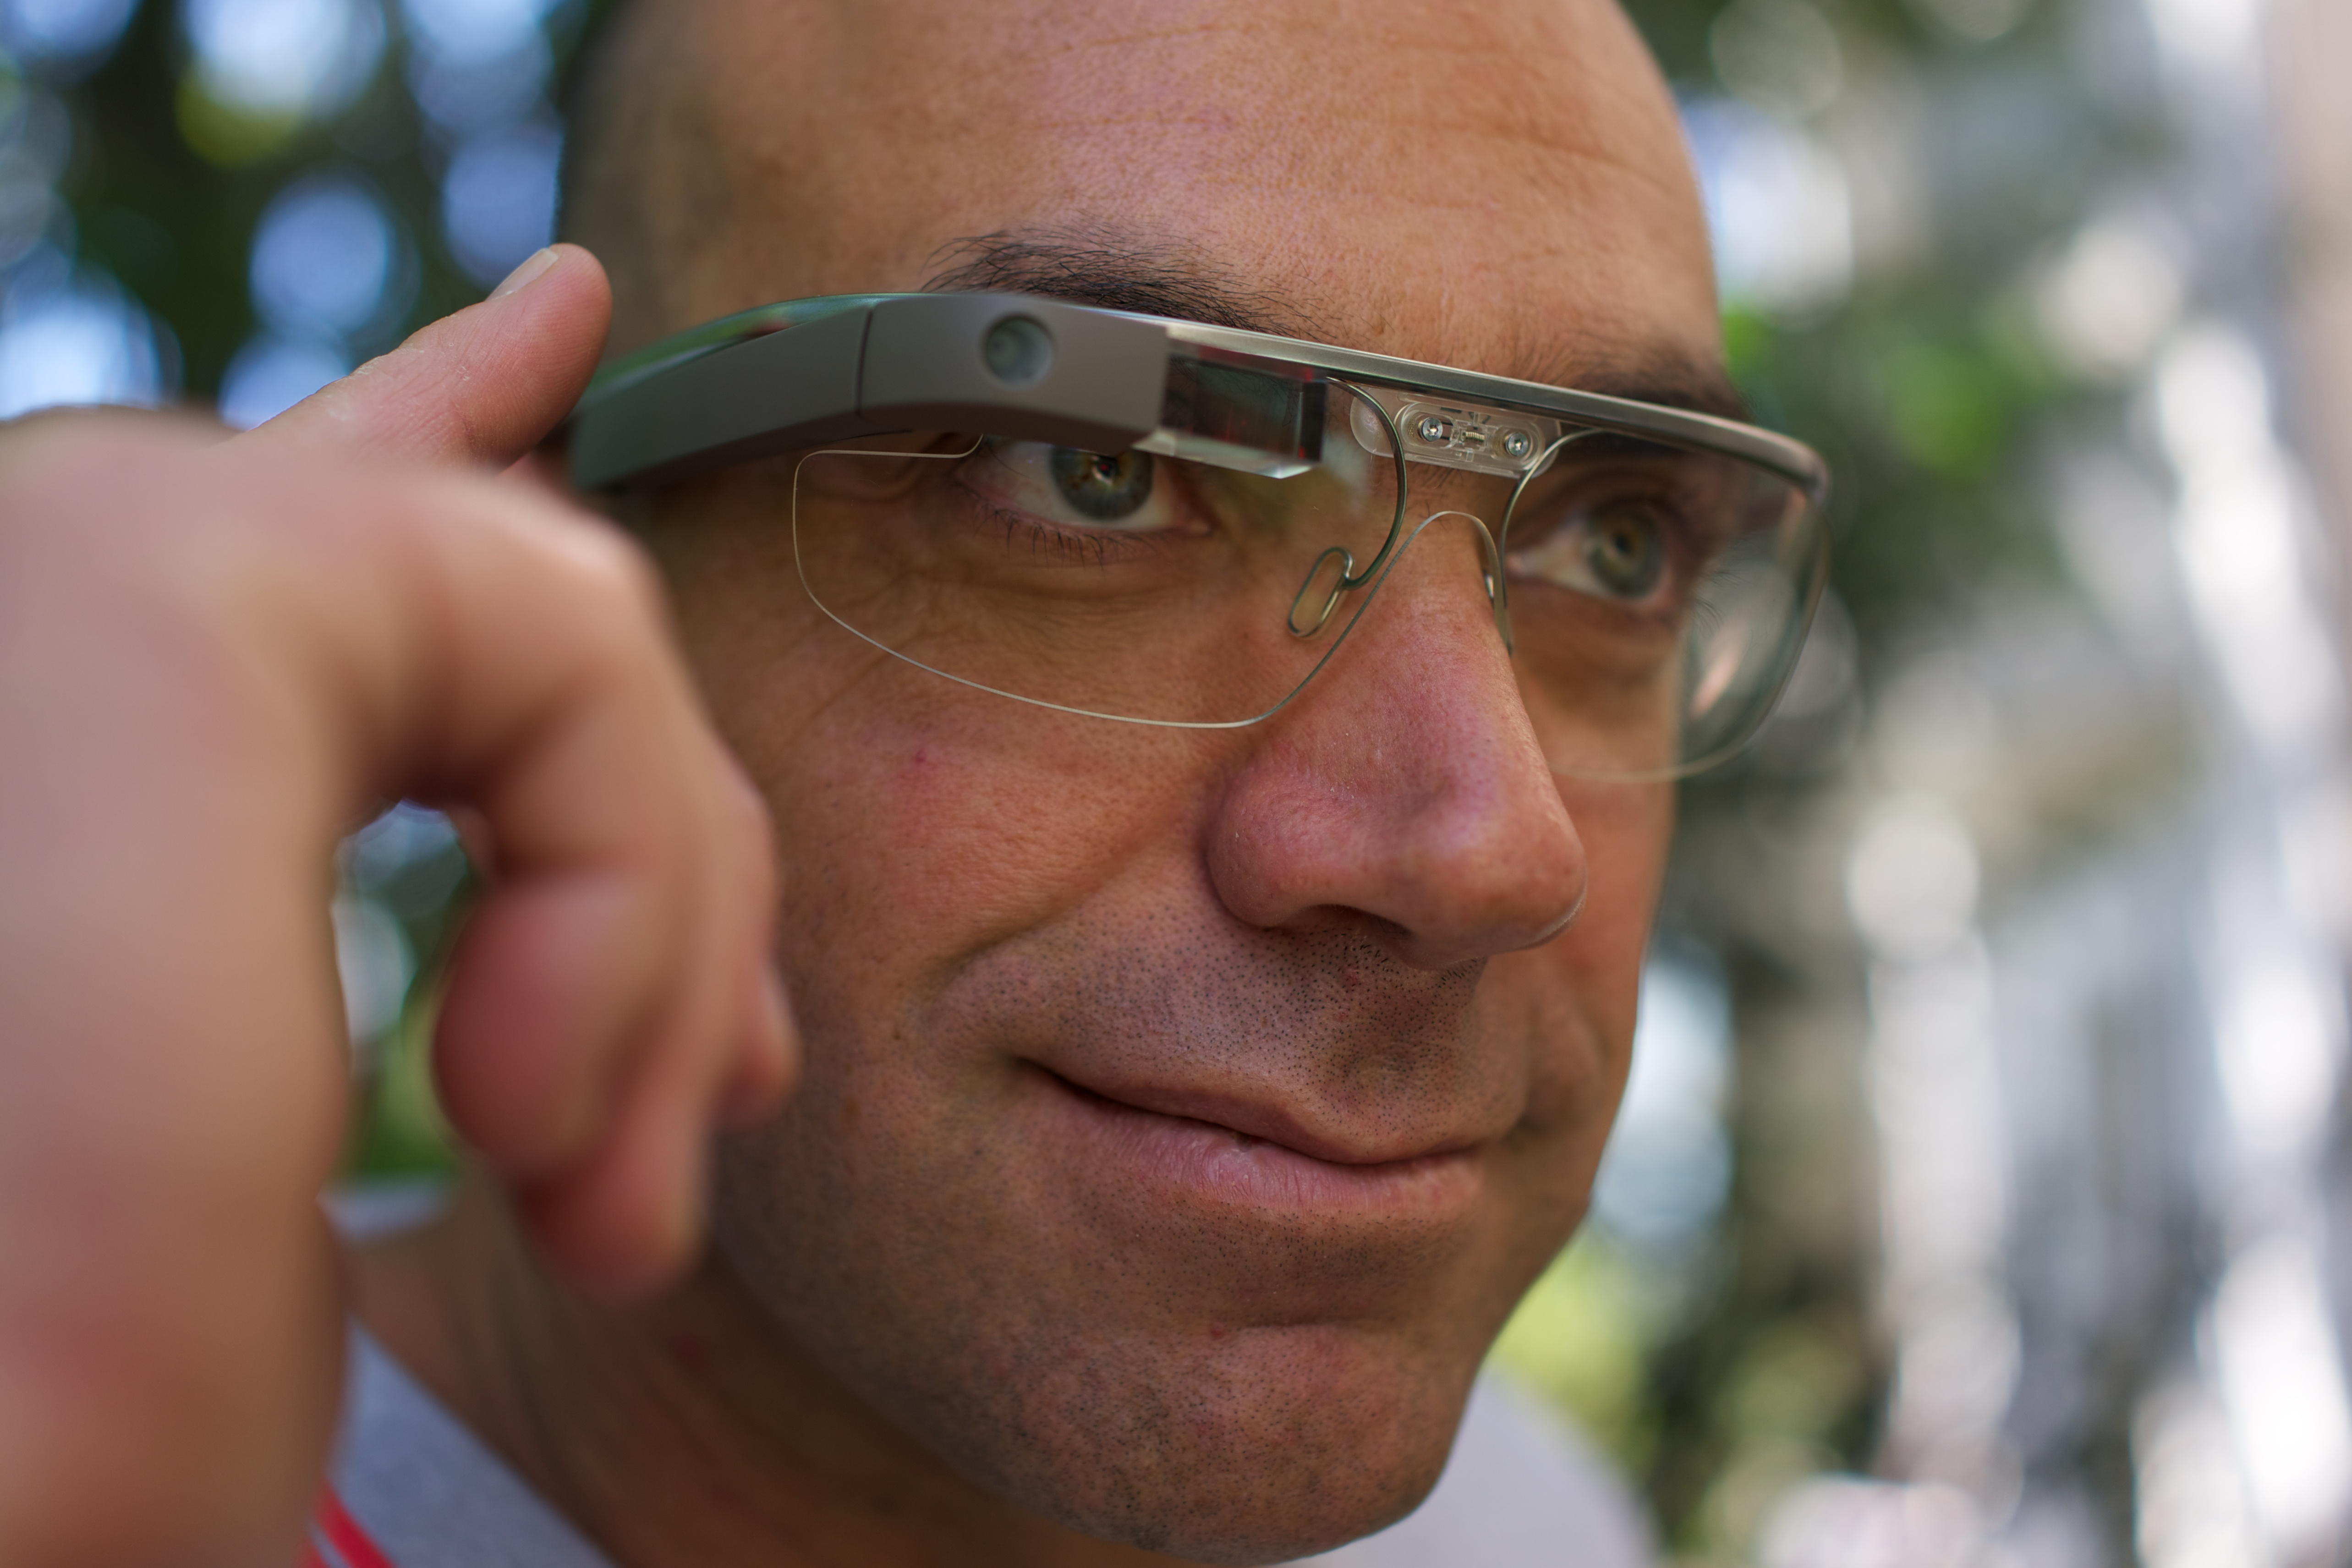 A developer, Loic Le Meu selected for Google Glass explorer edition shows off wearing Google Glass Wikipedia via Flickr